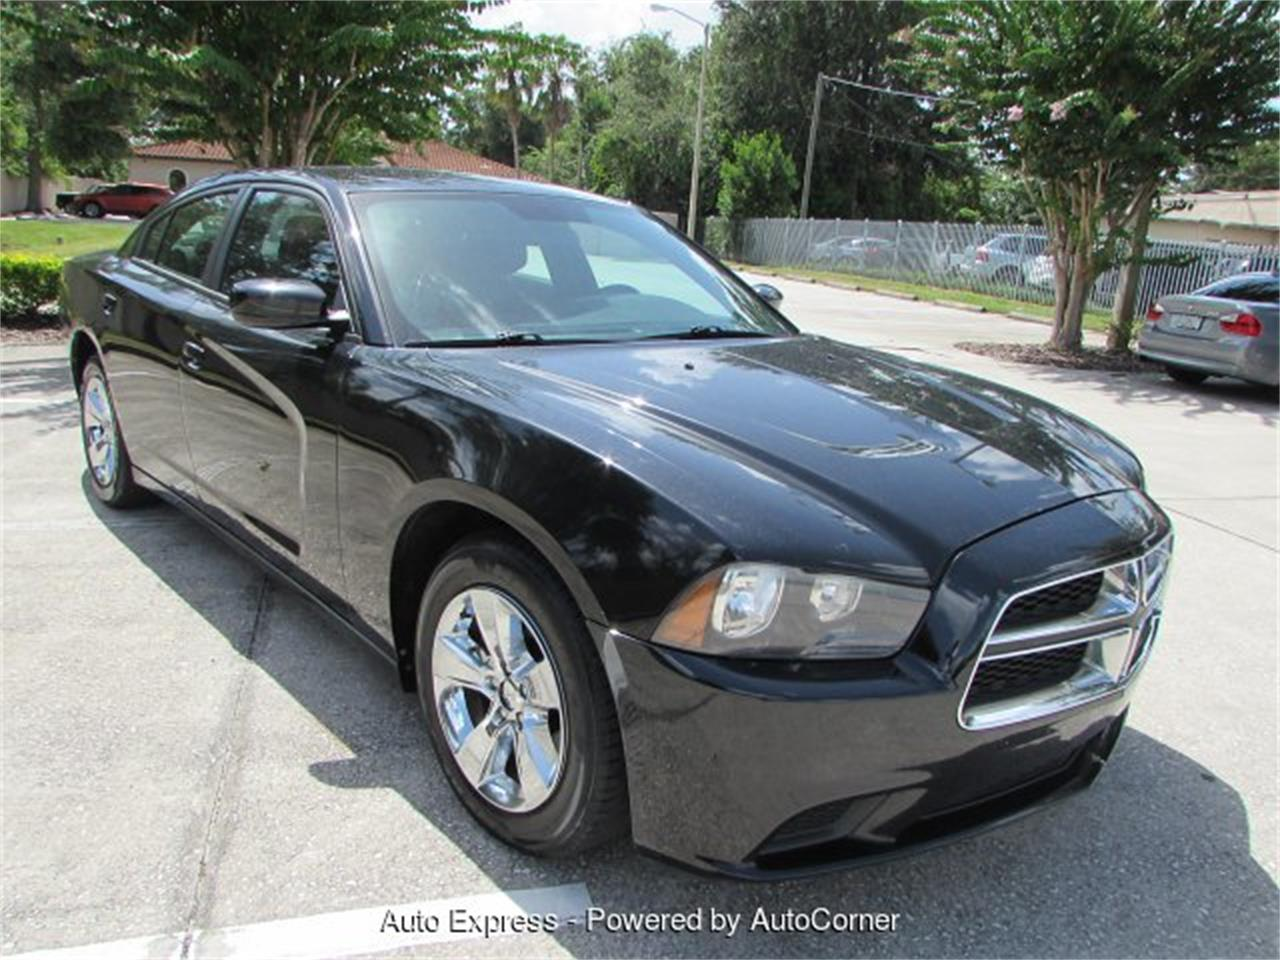 2012 Dodge Charger For Sale >> 2012 Dodge Charger For Sale Classiccars Com Cc 1137520